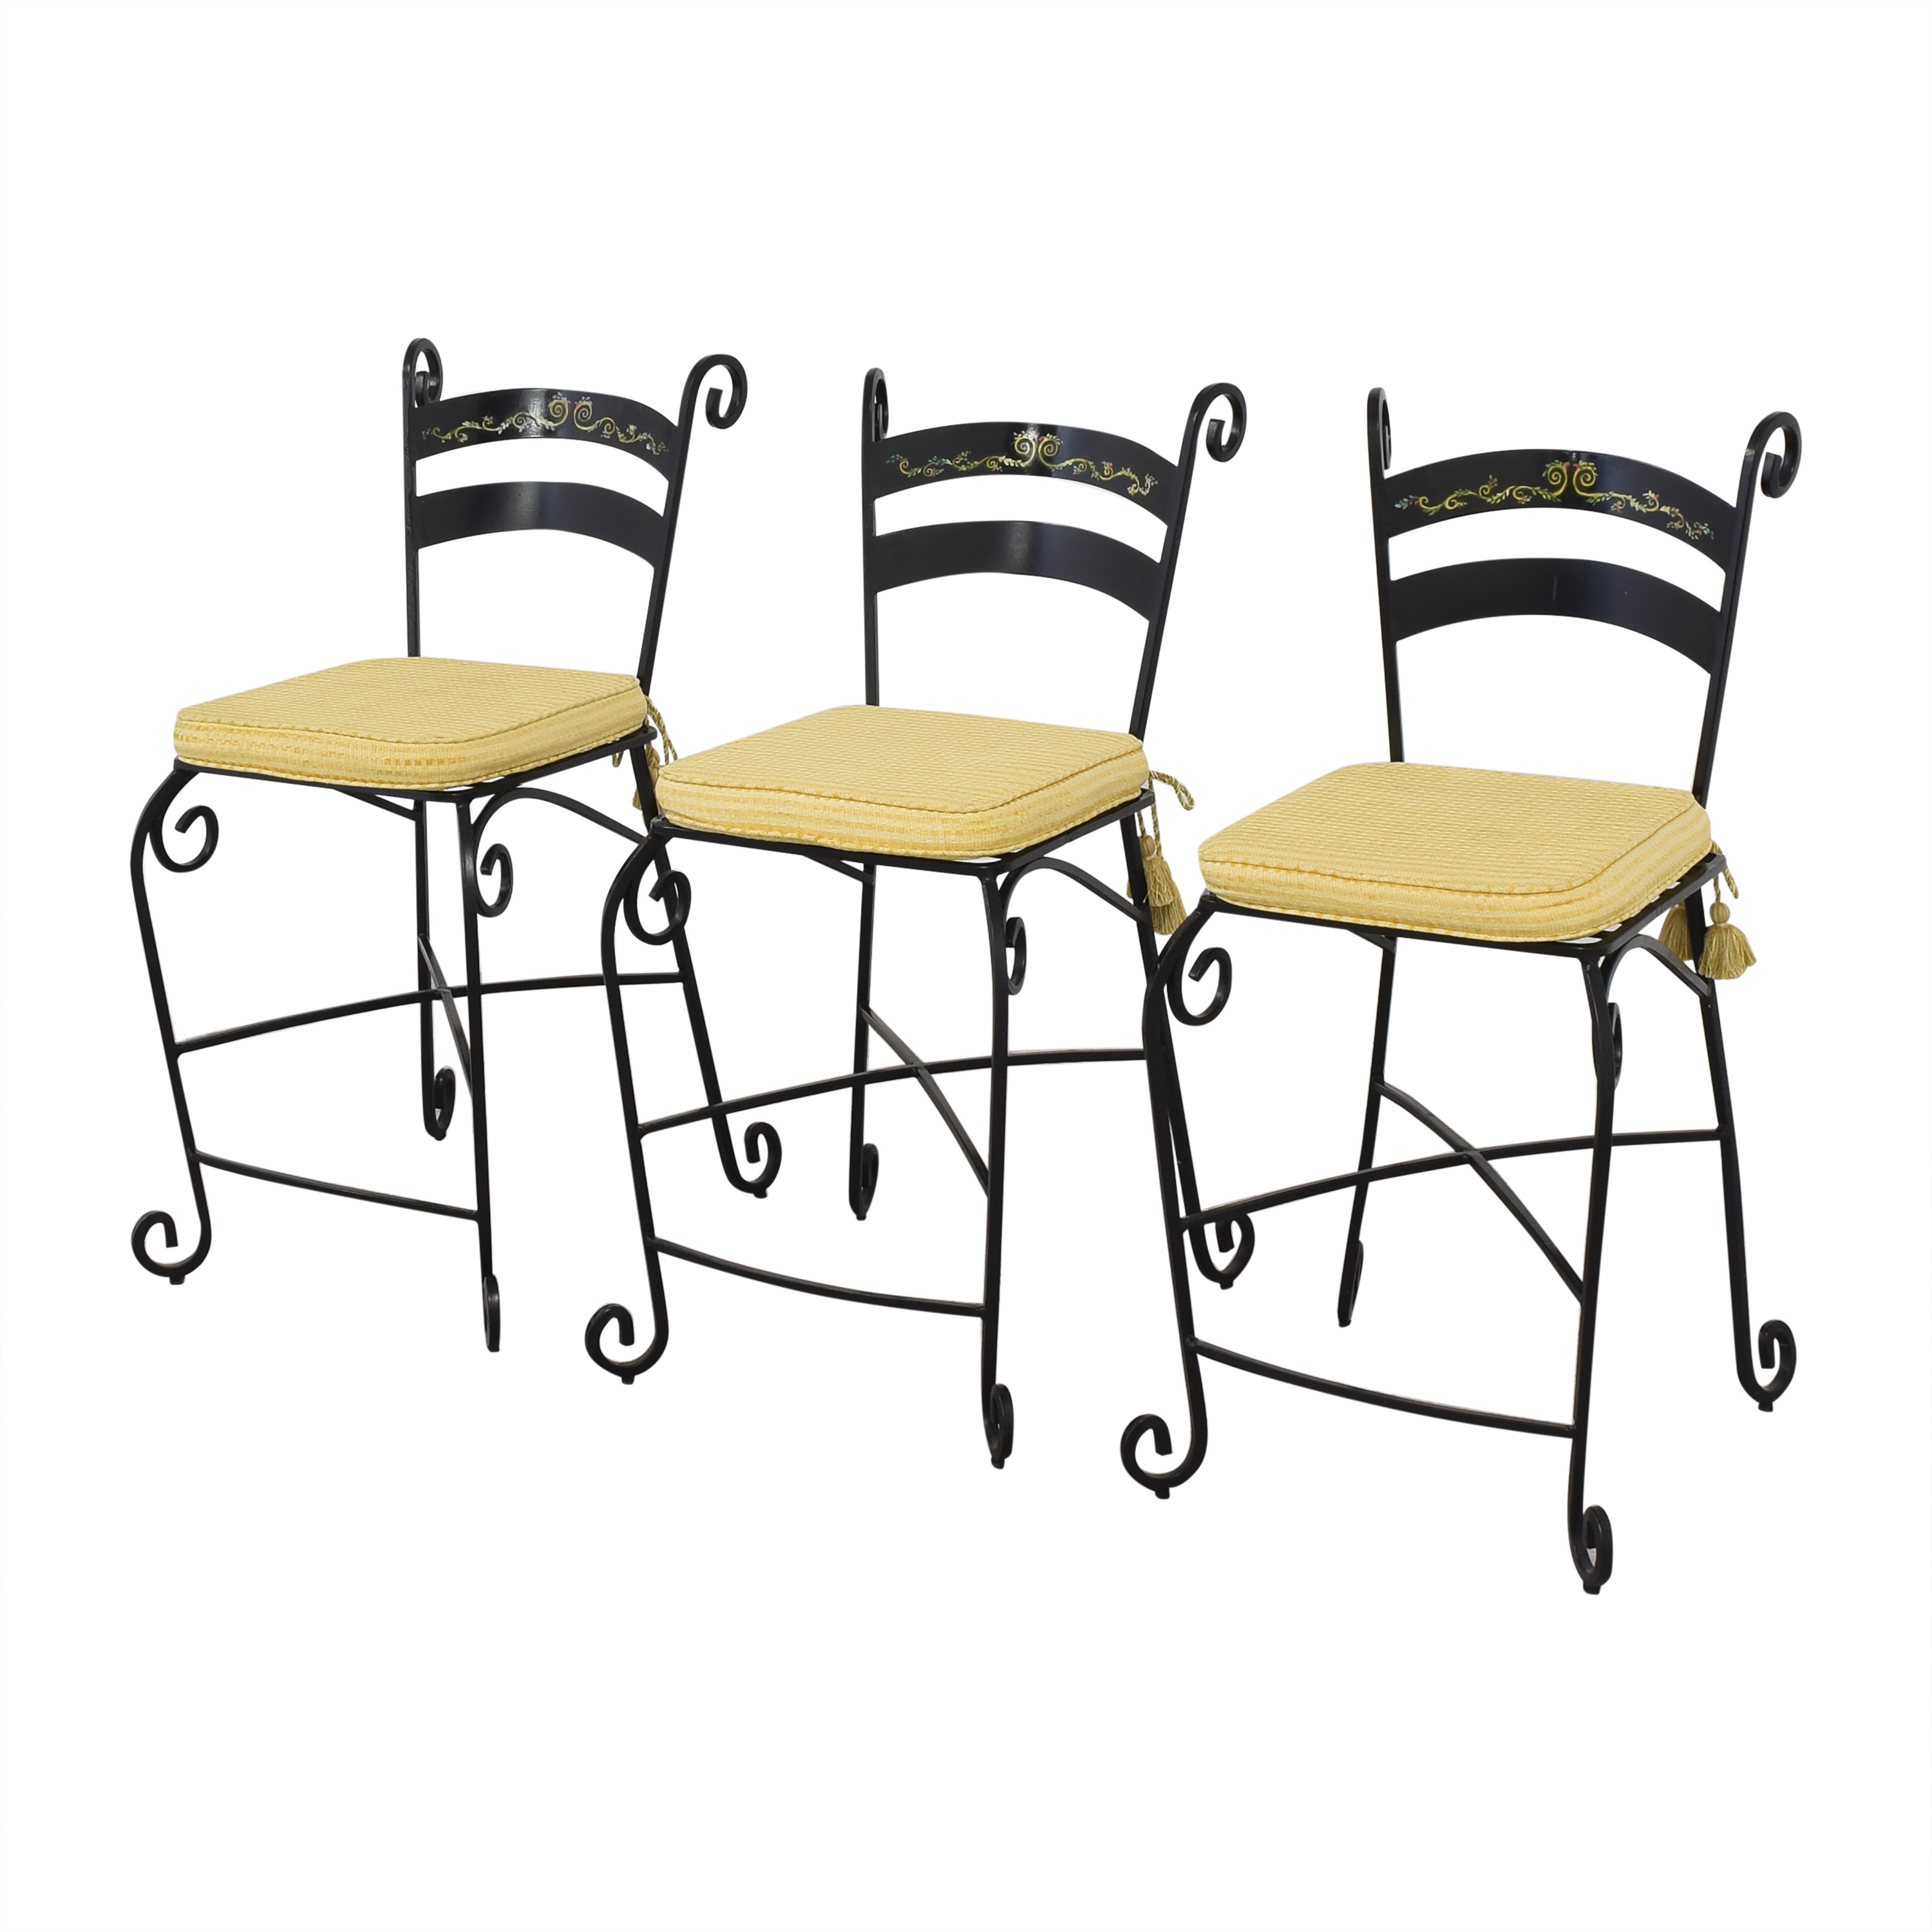 Wrought Frame Bar Stools for sale